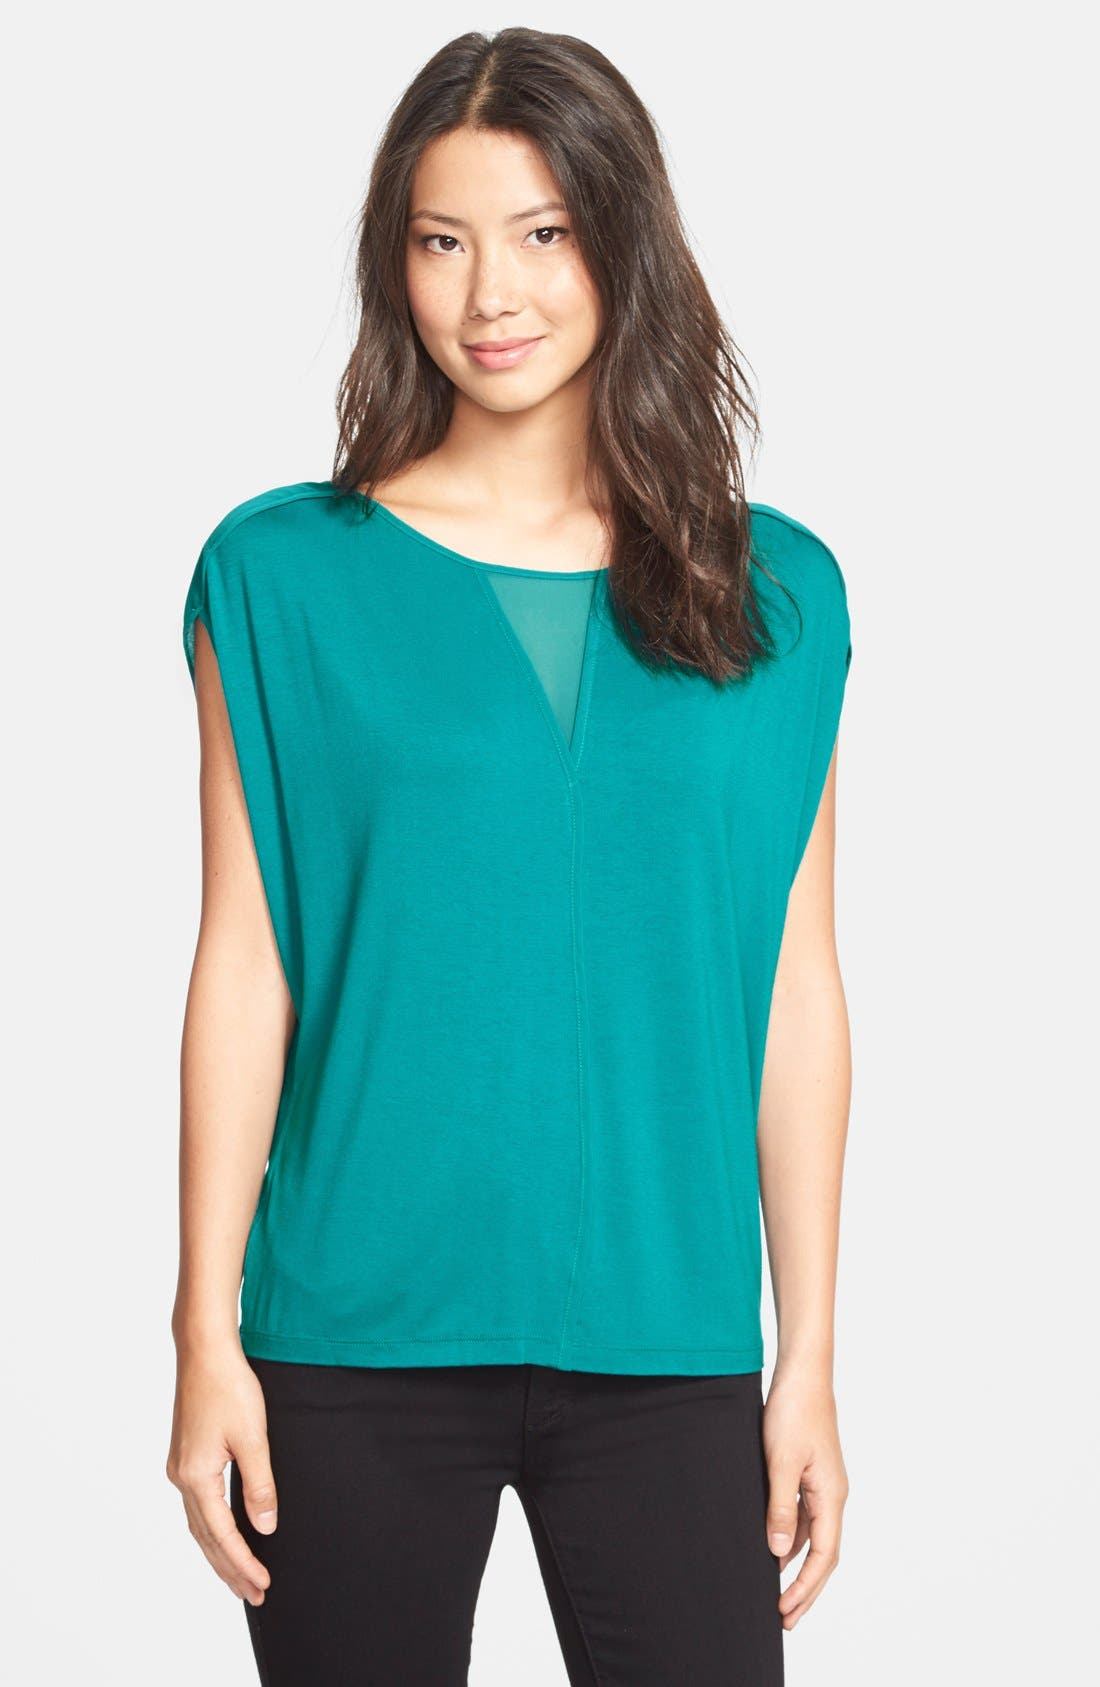 Alternate Image 1 Selected - Adrianna Papell Chiffon Inset Slouchy Jersey Top